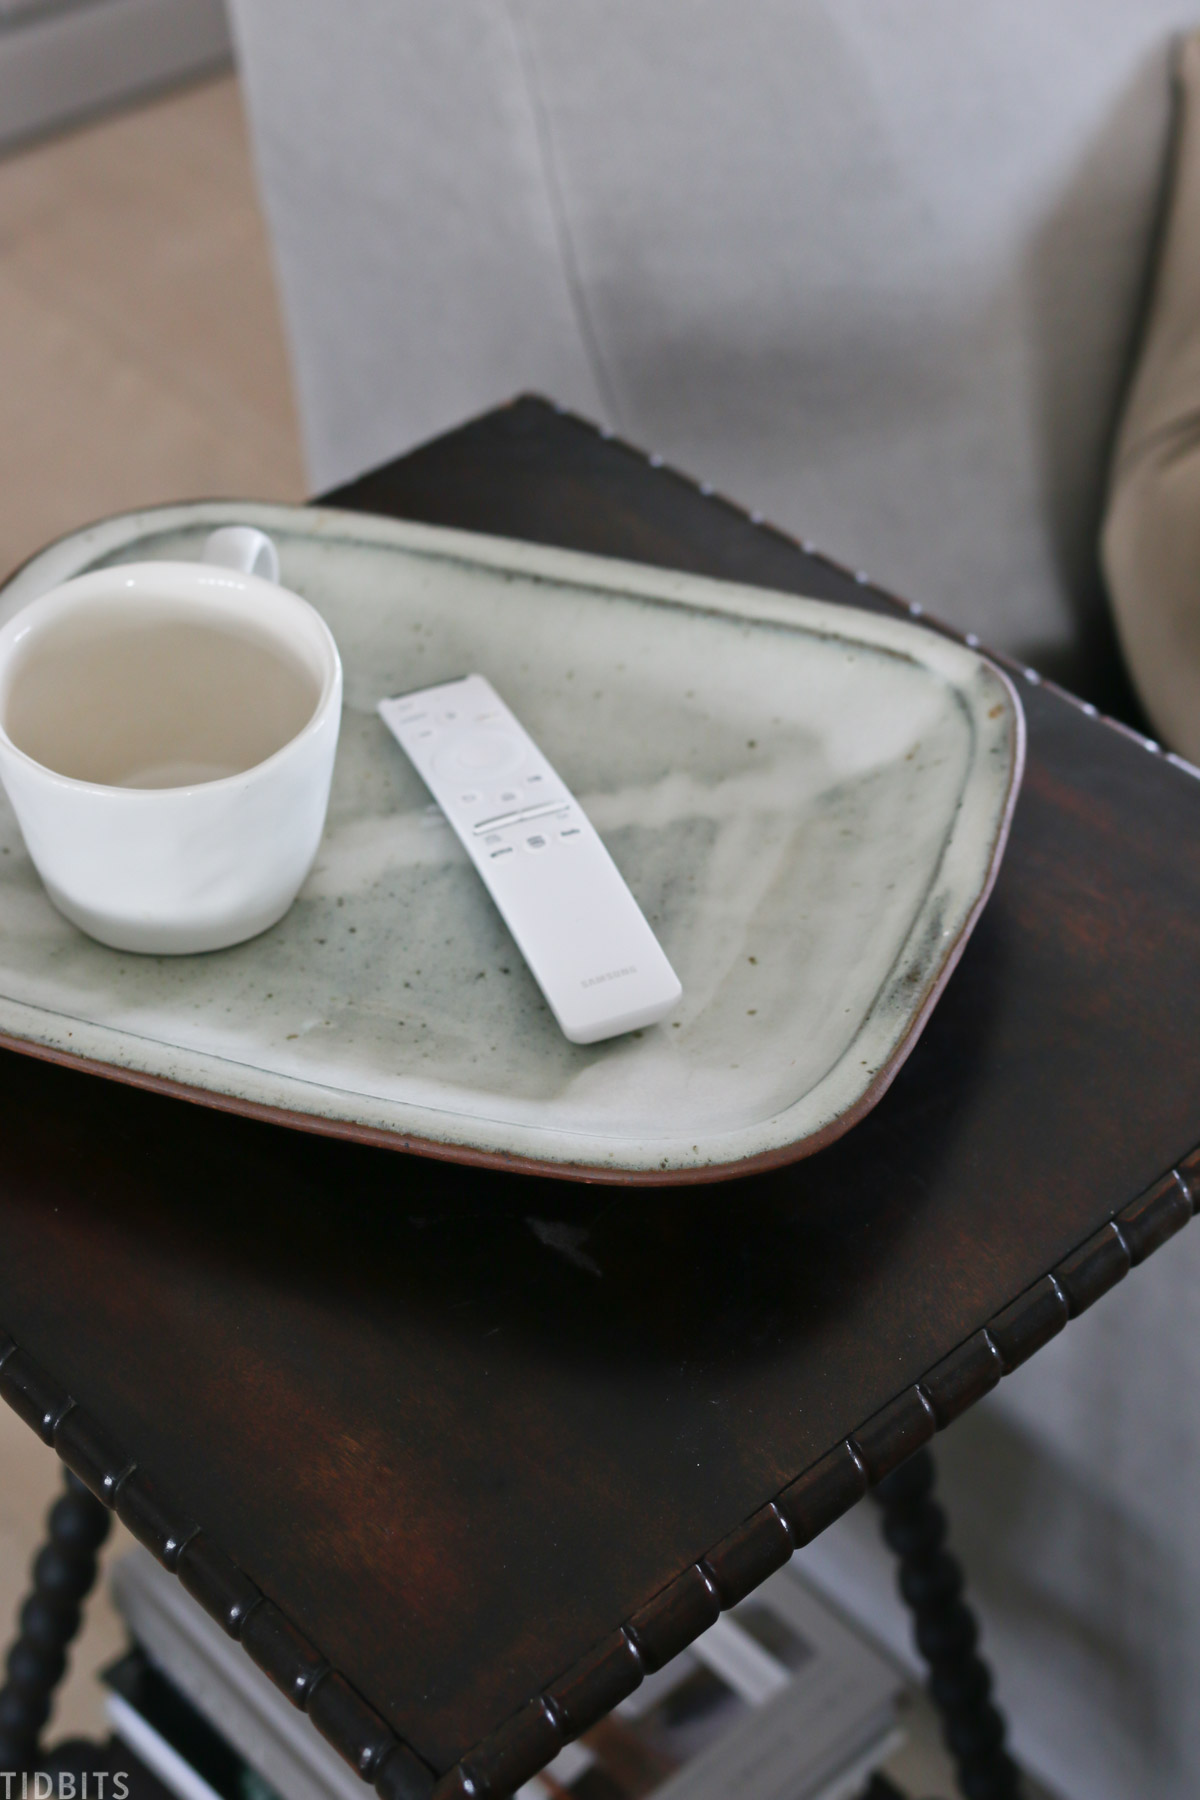 ceramic tray on a side table with a remote and mug on top of it